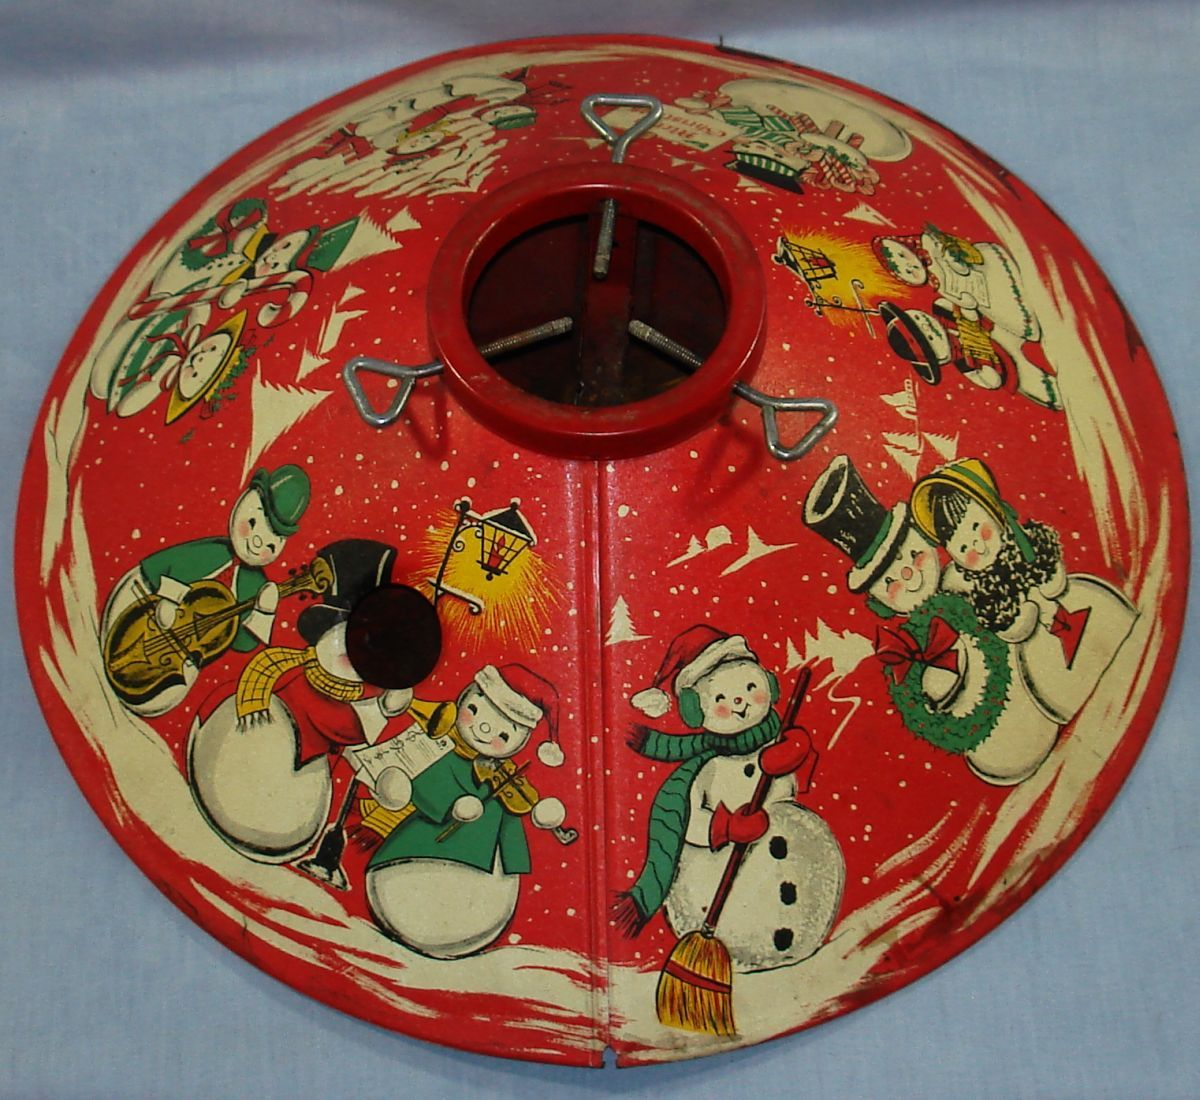 Vintage Christmas Tree Stand.1950s Tree Stand Oh Christmas Tree Stand Oh Christmas Tree